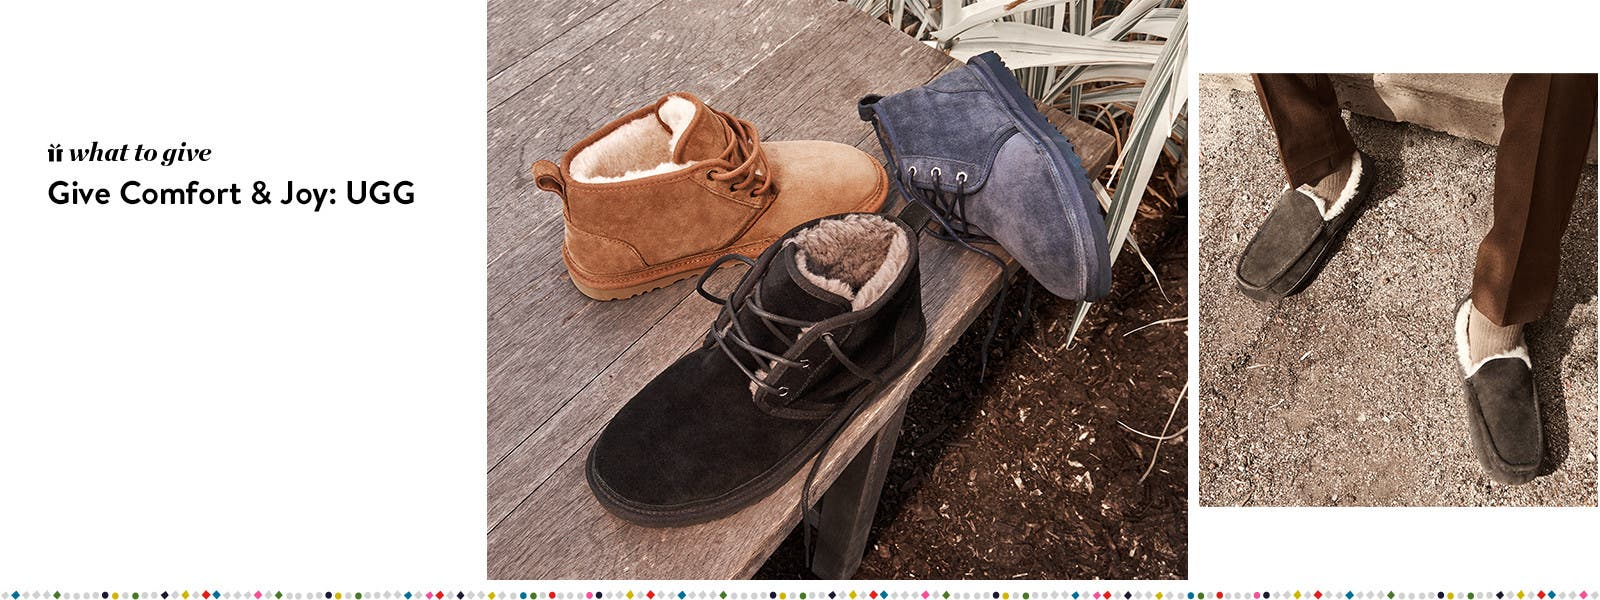 Give comfort and joy, men's slippers and men's boots from UGG.